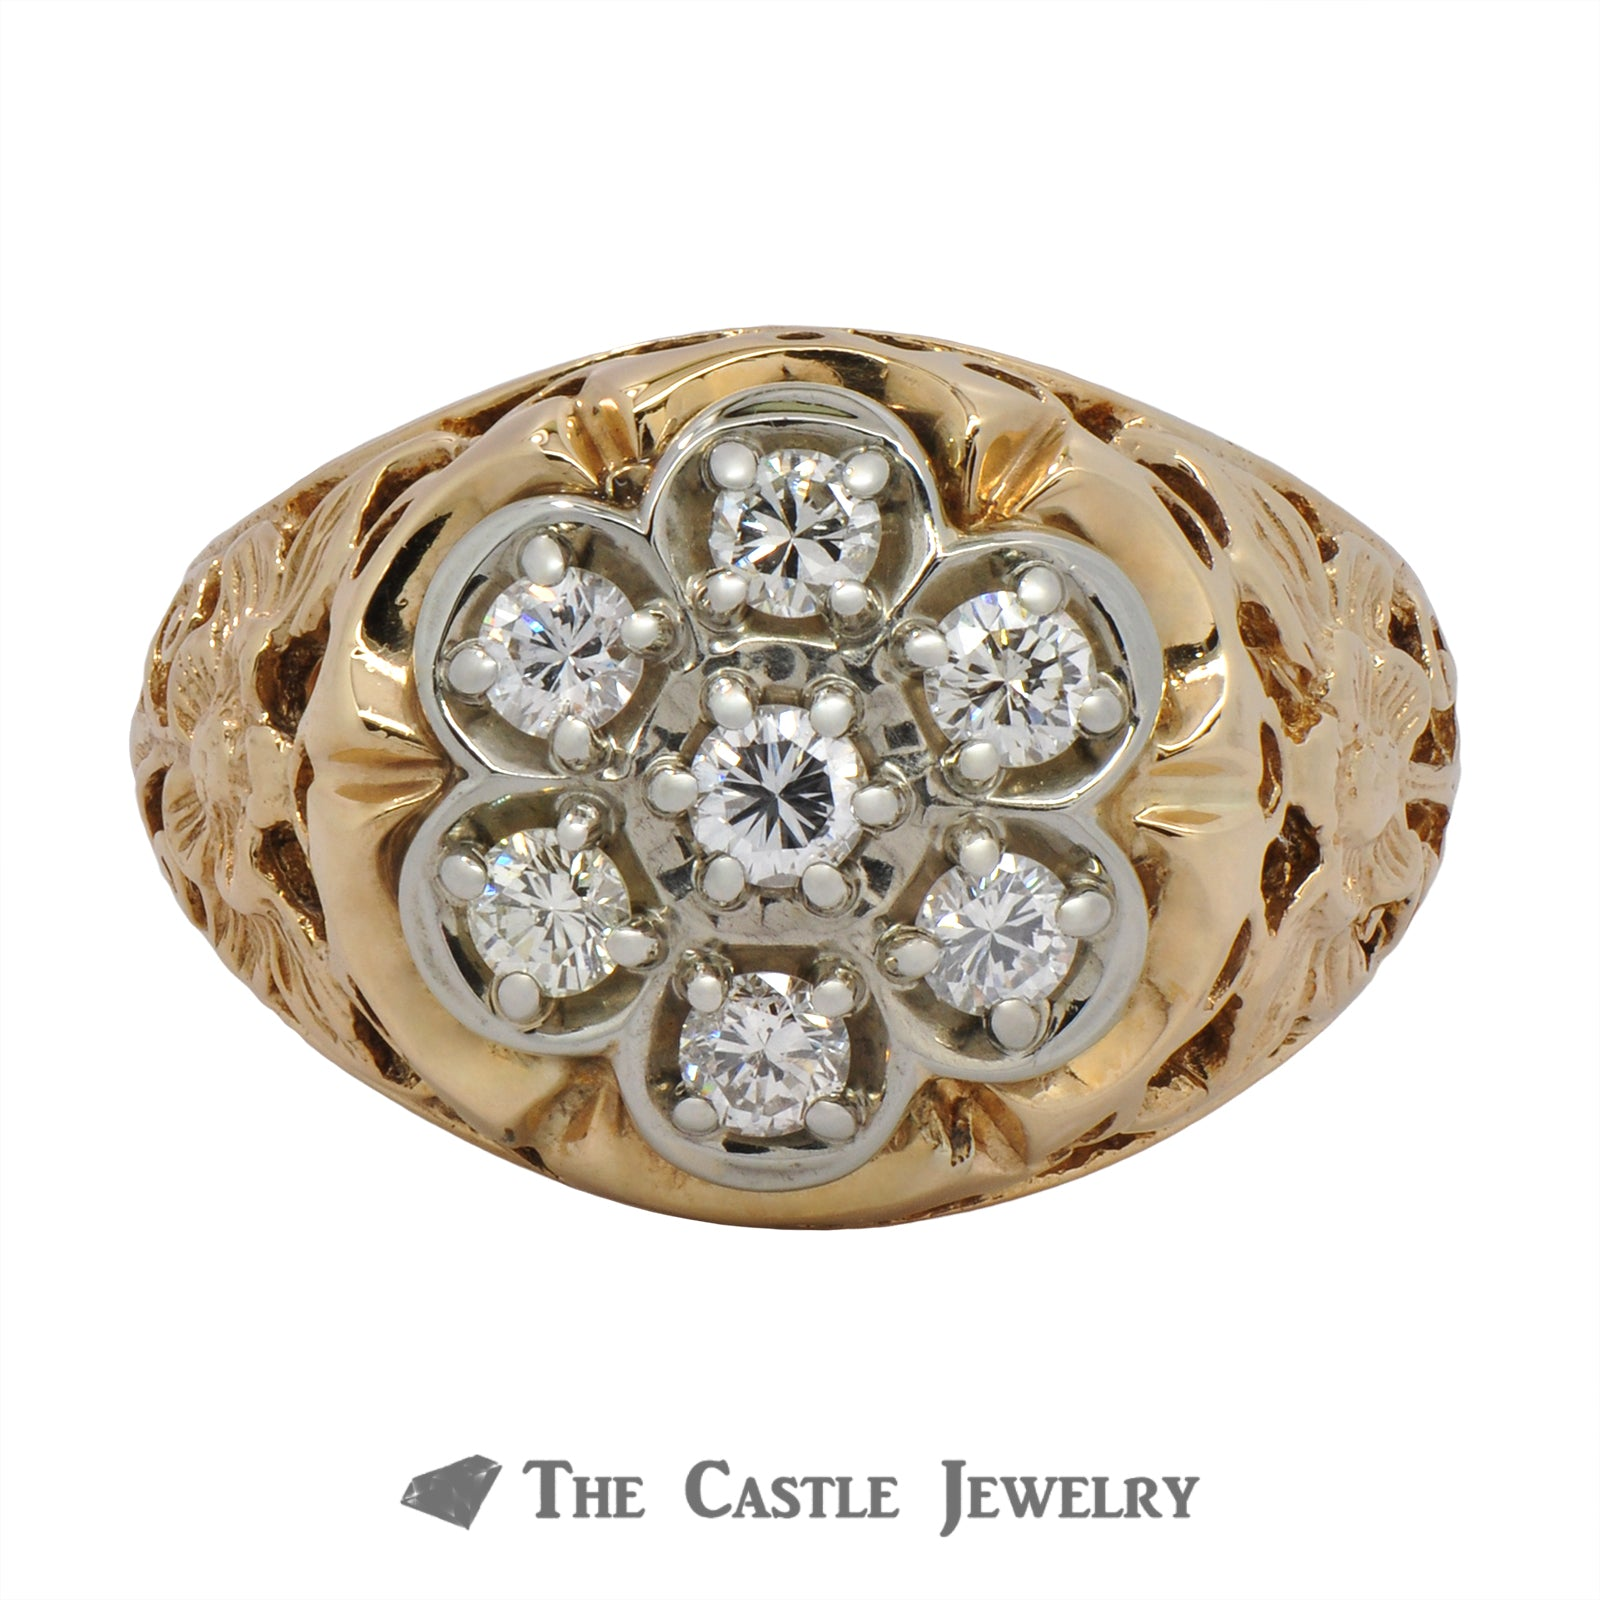 7 Diamond Cluster Ring with Flower Filigree 10K Mounting